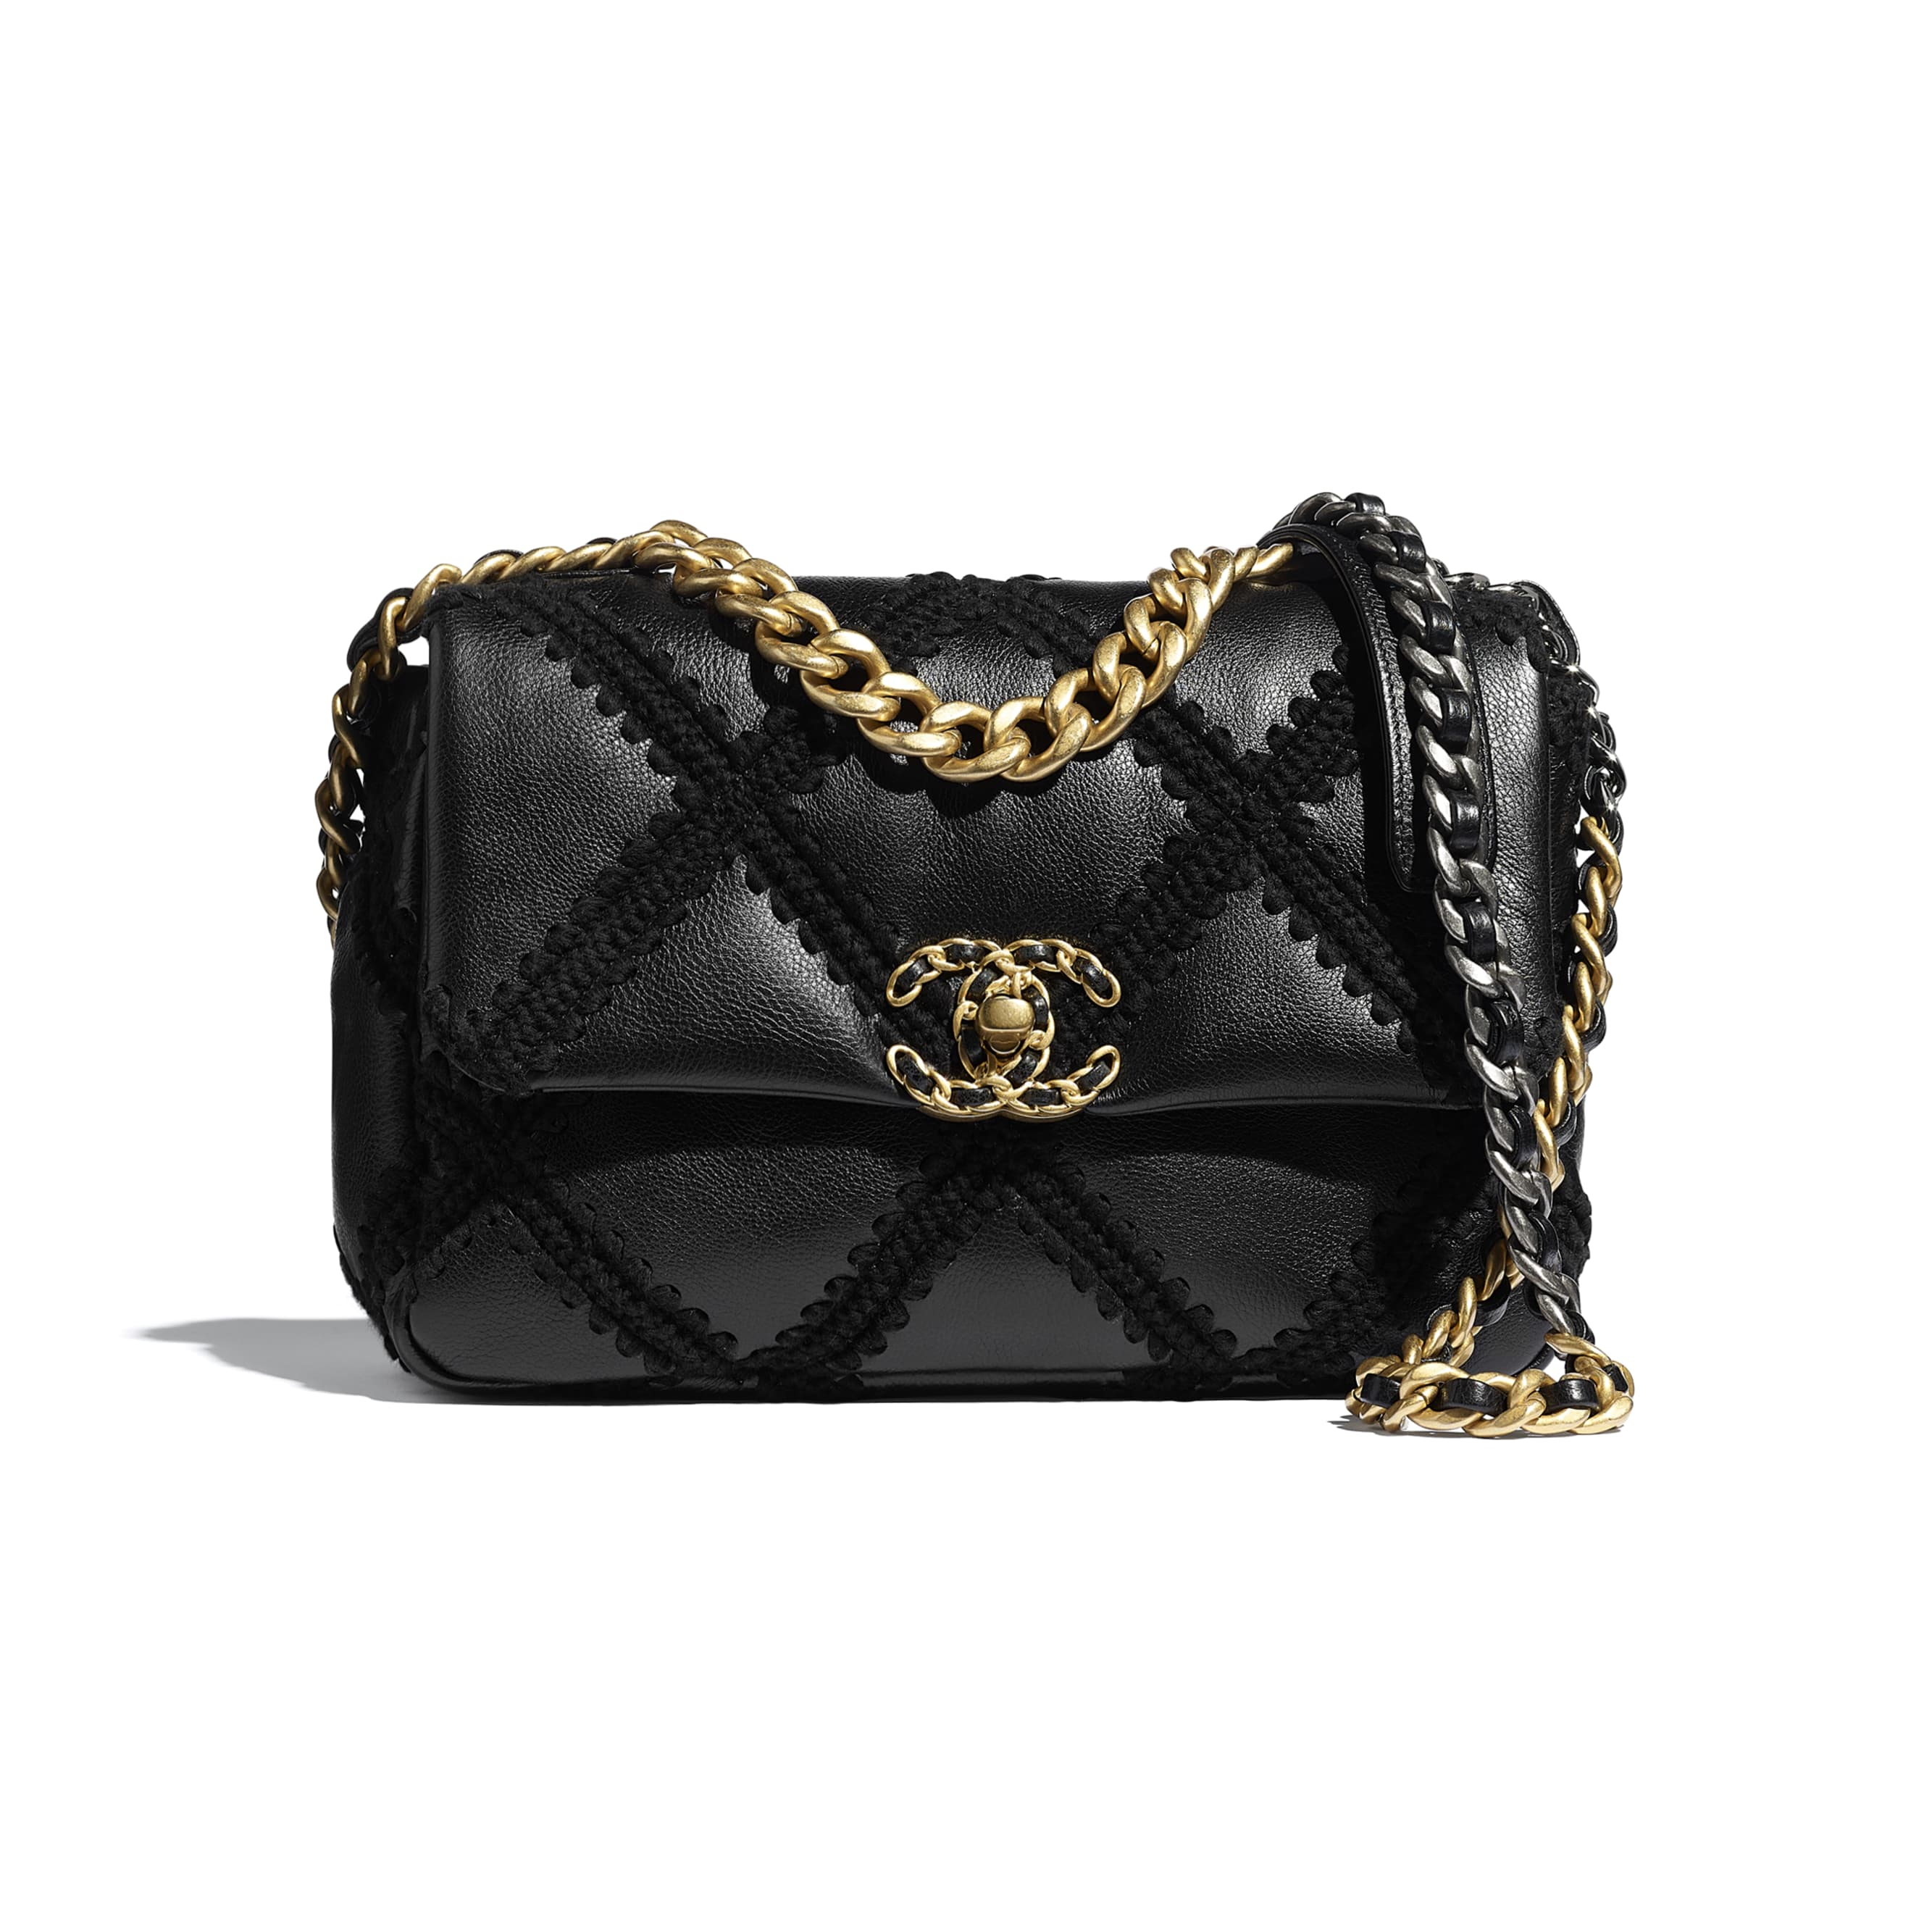 CHANEL 19 Flap Bag - Black - Calfskin, Crochet, Gold-Tone, Silver-Tone & Ruthenium-Finish Metal - CHANEL - Default view - see standard sized version